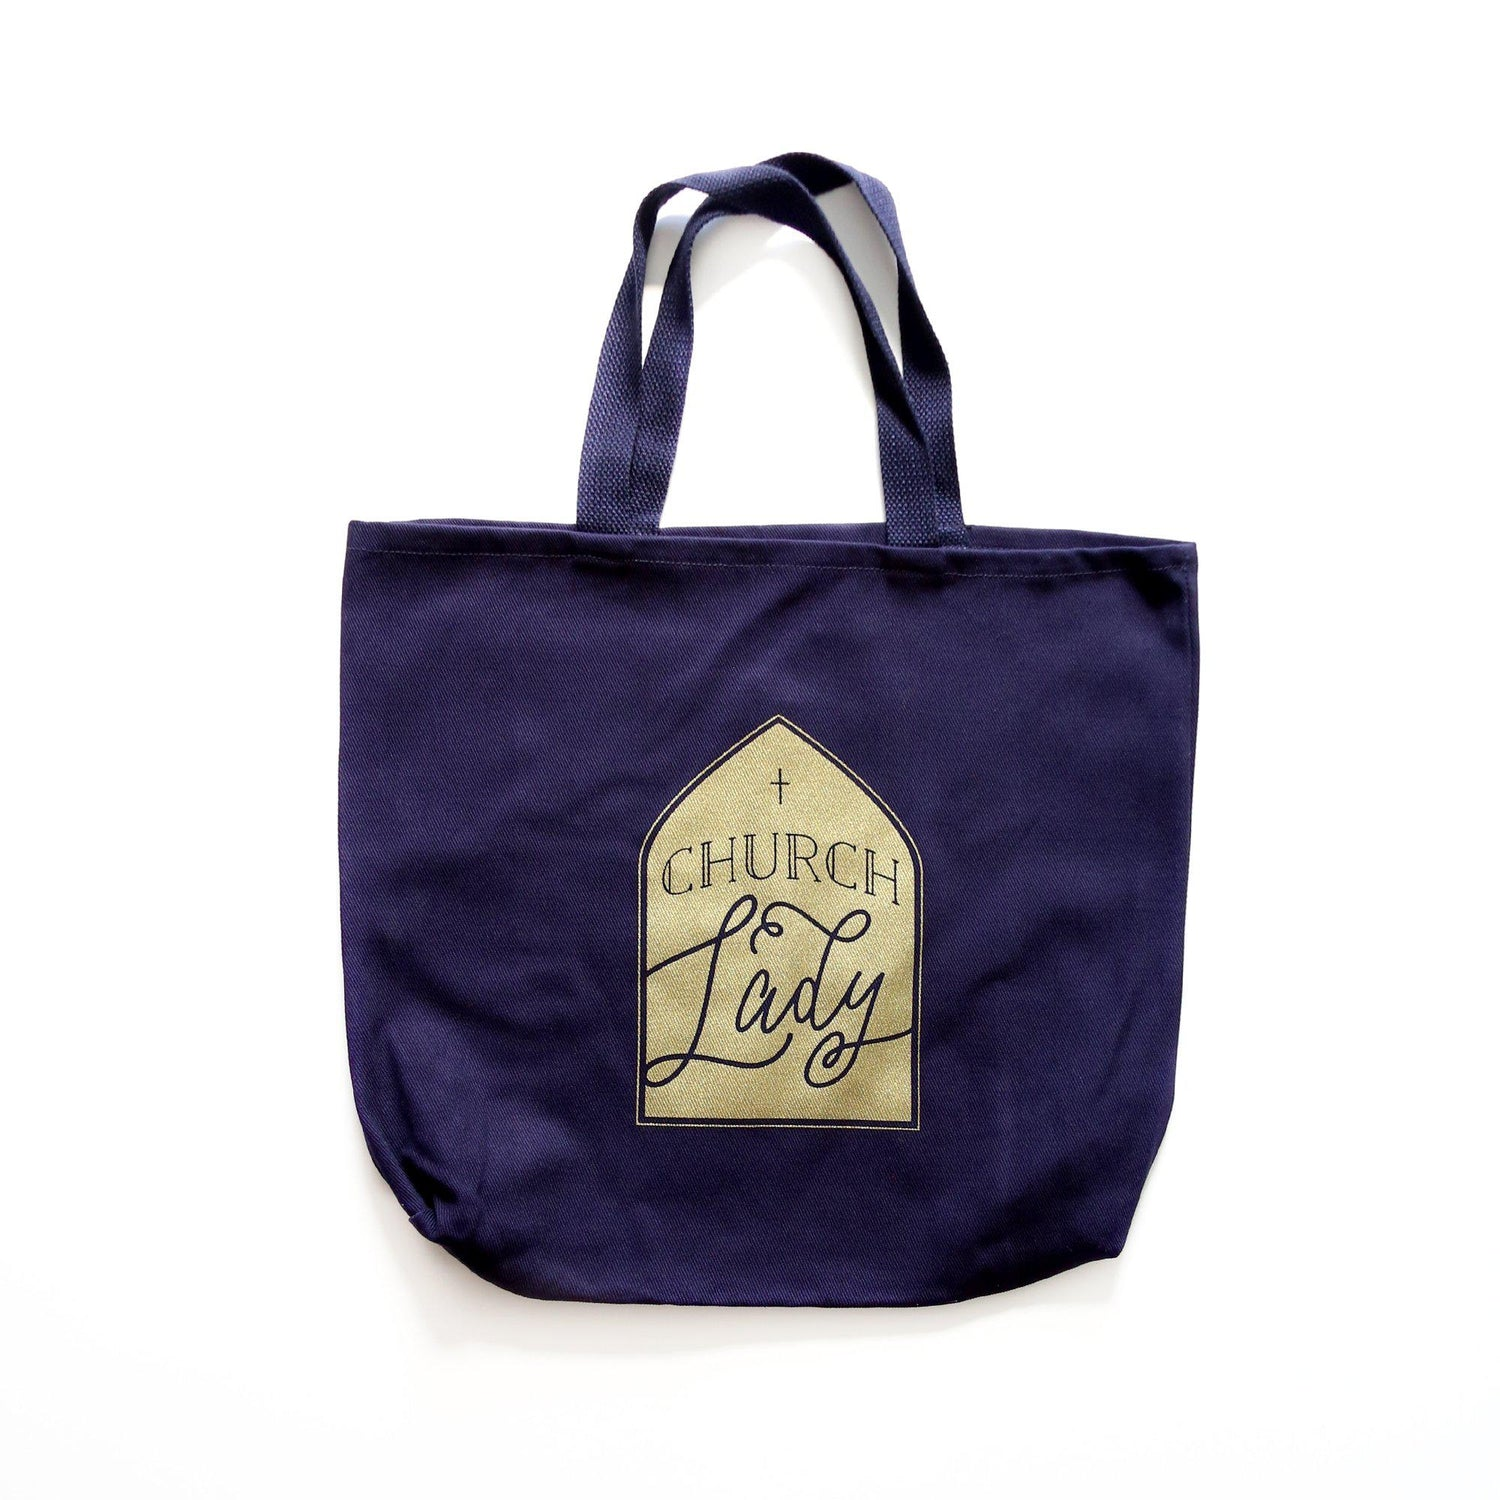 Church lady tote bag from Muscadine Press